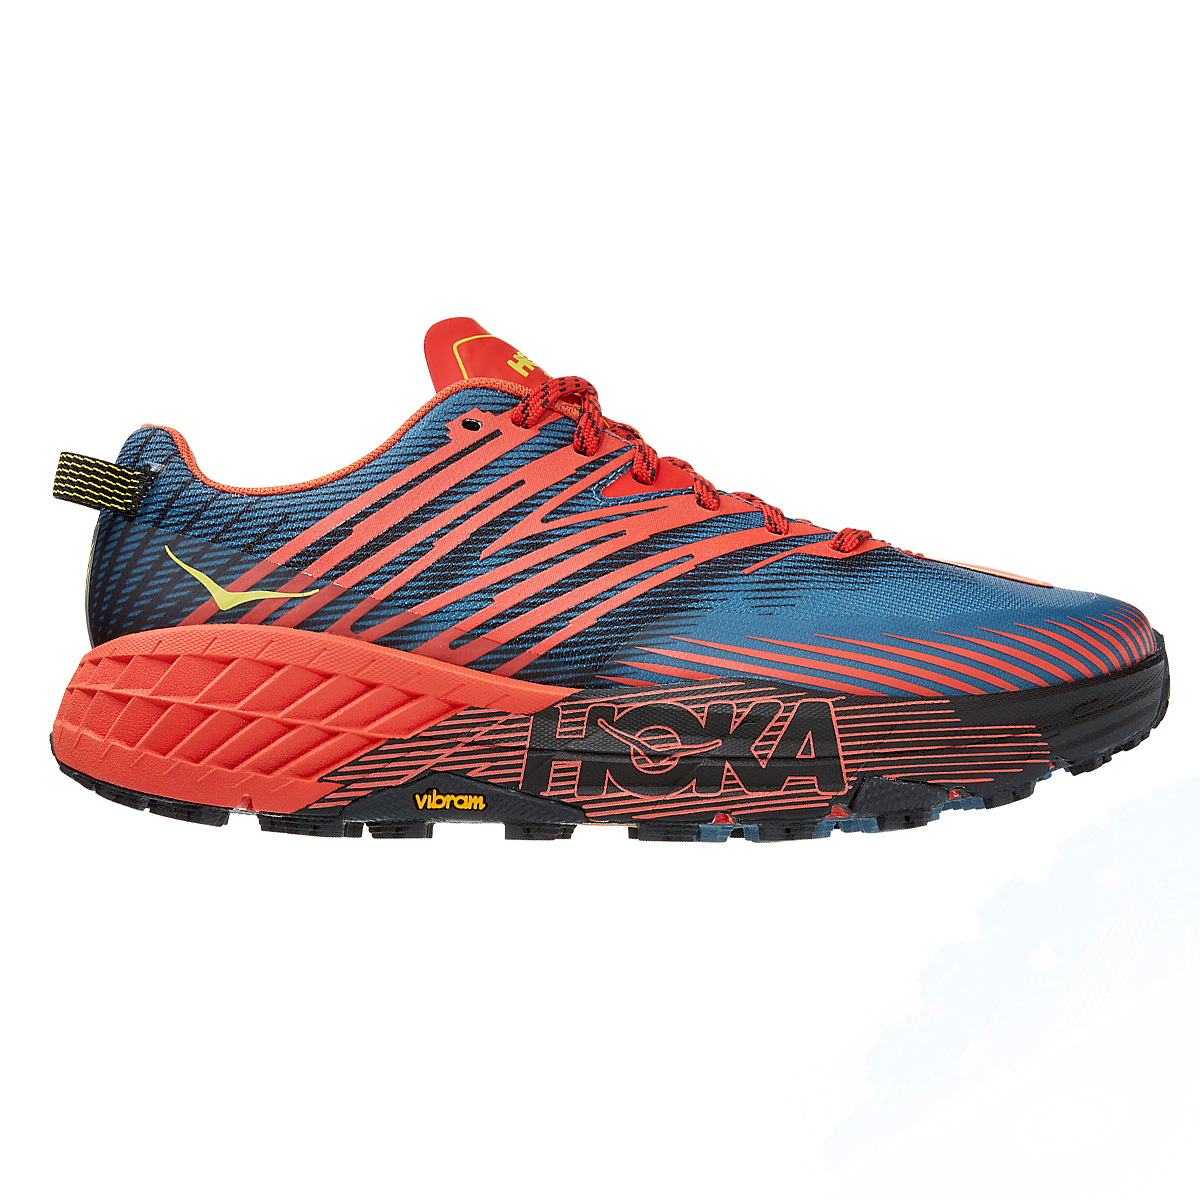 Men's Hoka One One Speedgoat 4 Trail Running Shoe - Color: Fiesta/Provincial Blue - Size: 7 - Width: Regular, Fiesta/Provincial Blue, large, image 1